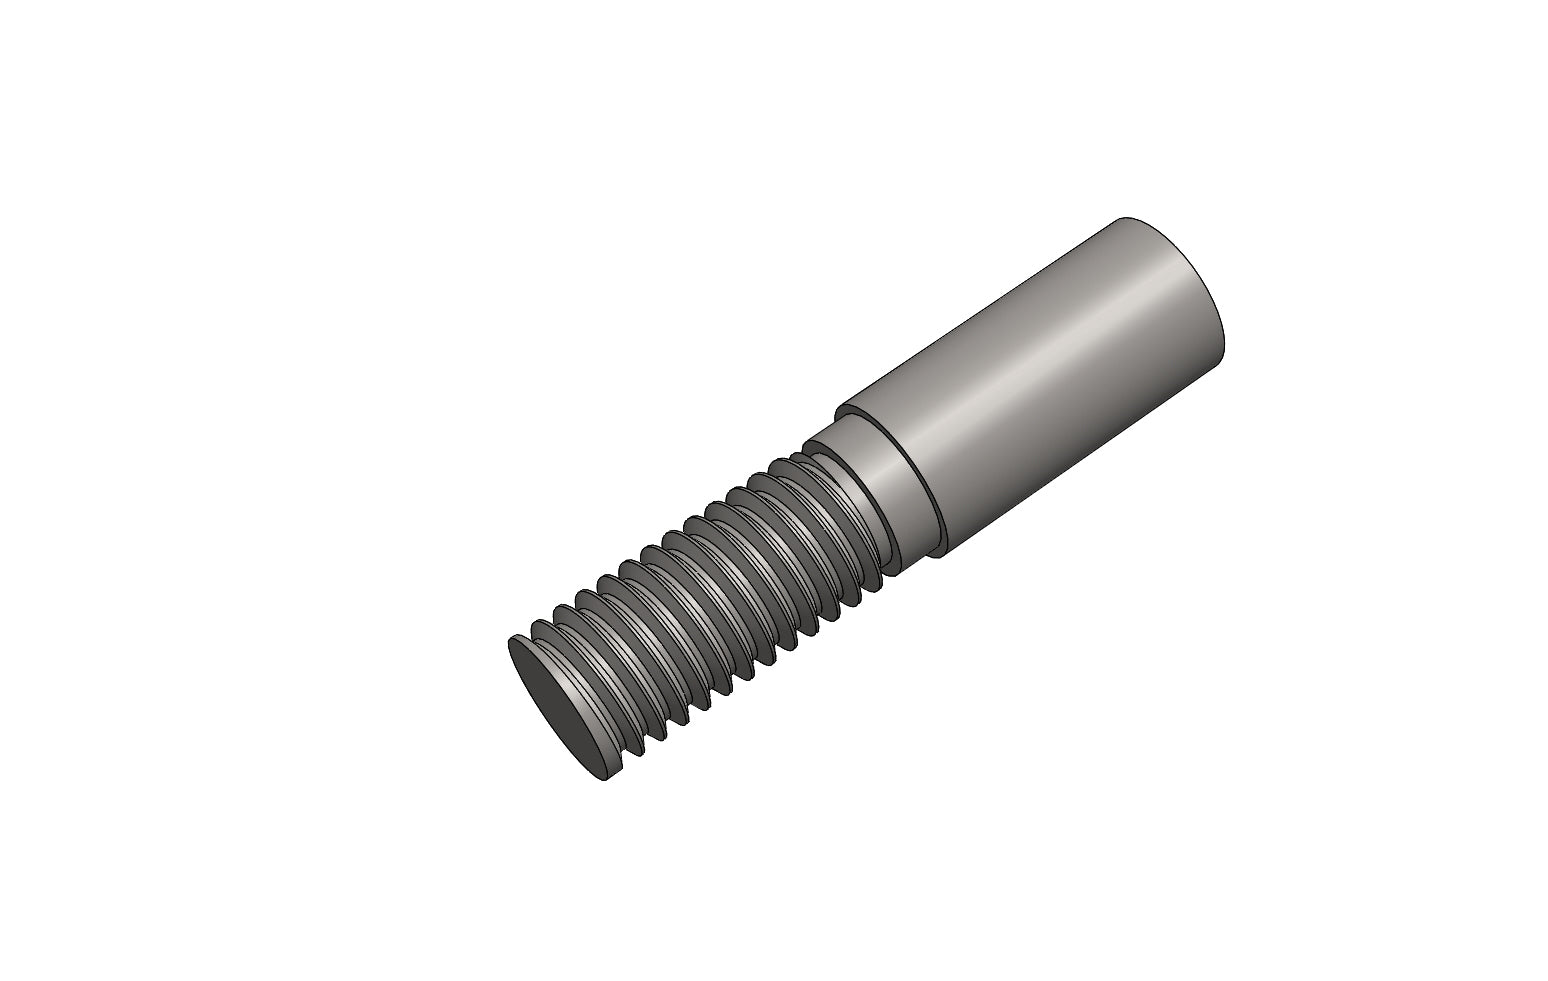 SCM00075B - SLAT PIN - Slat Filler Spare Part